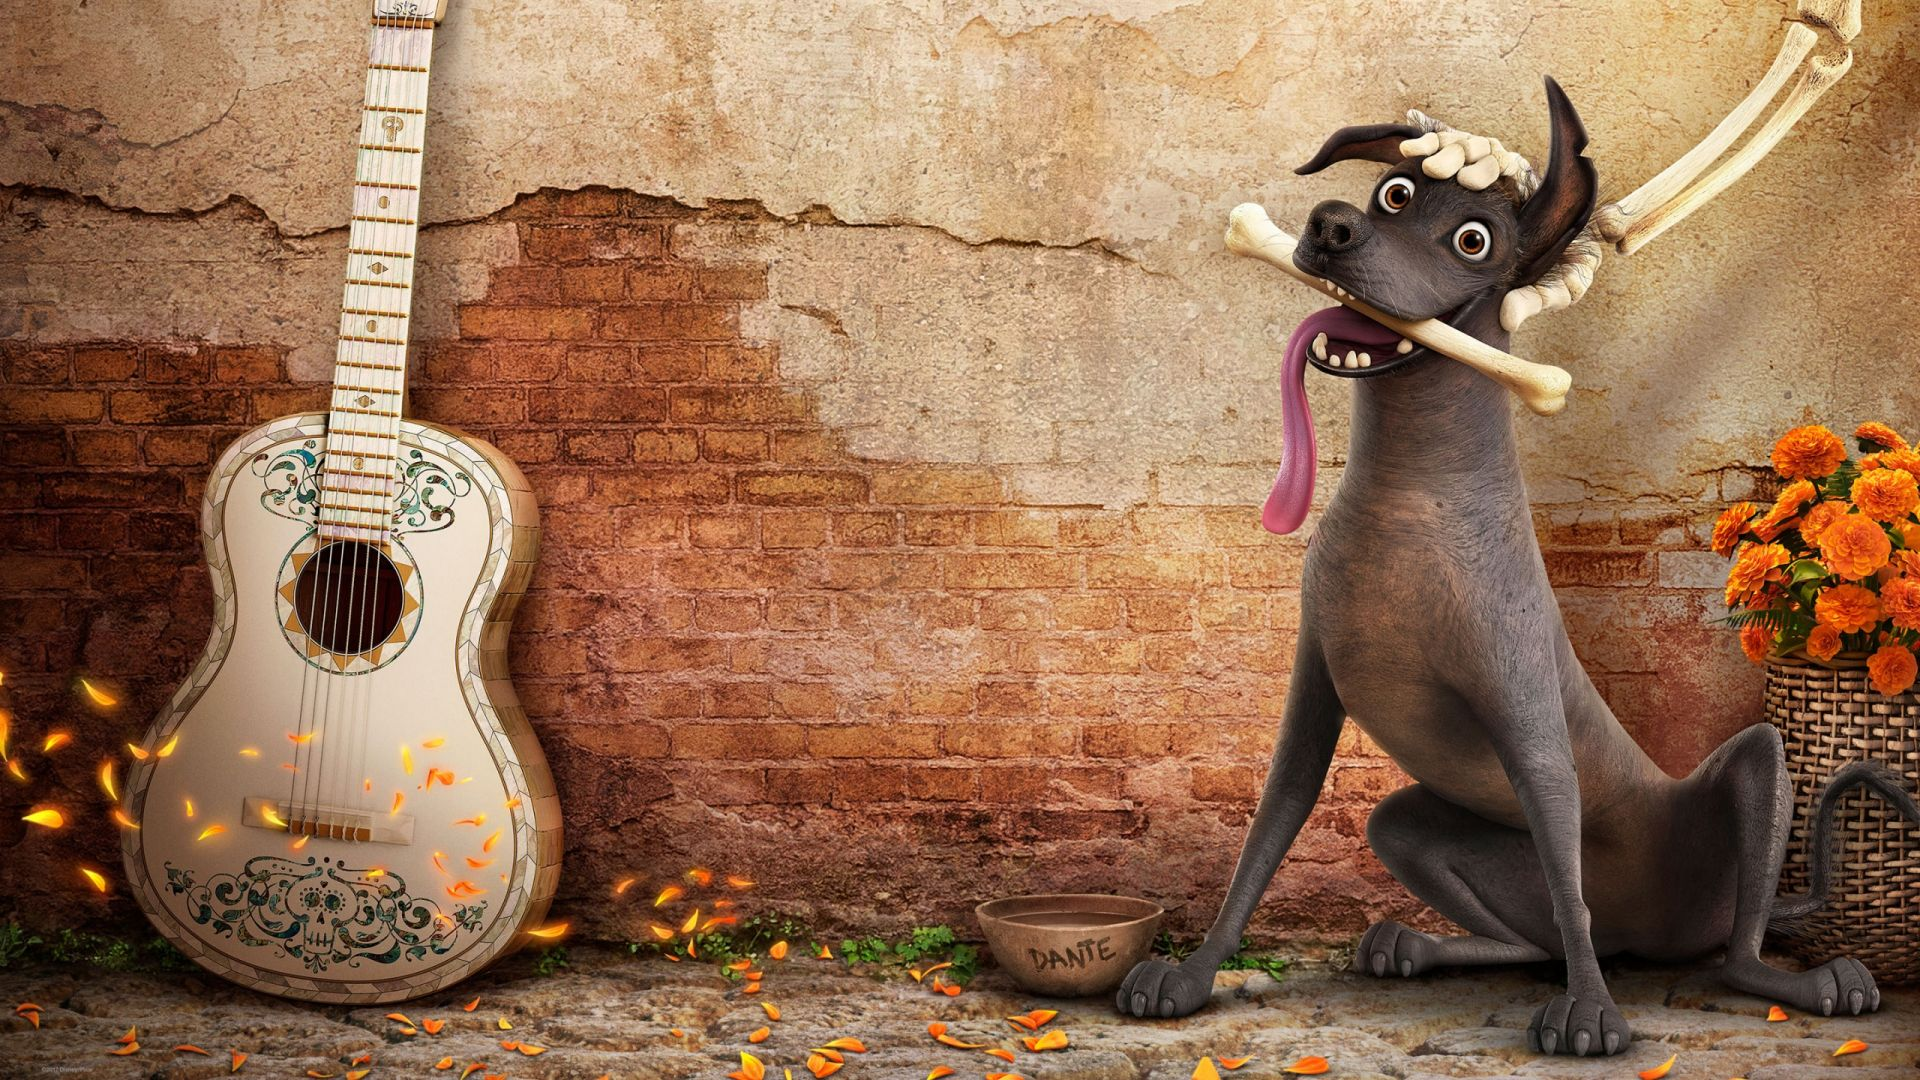 Coco, dog, guitar, best animation movies (horizontal)